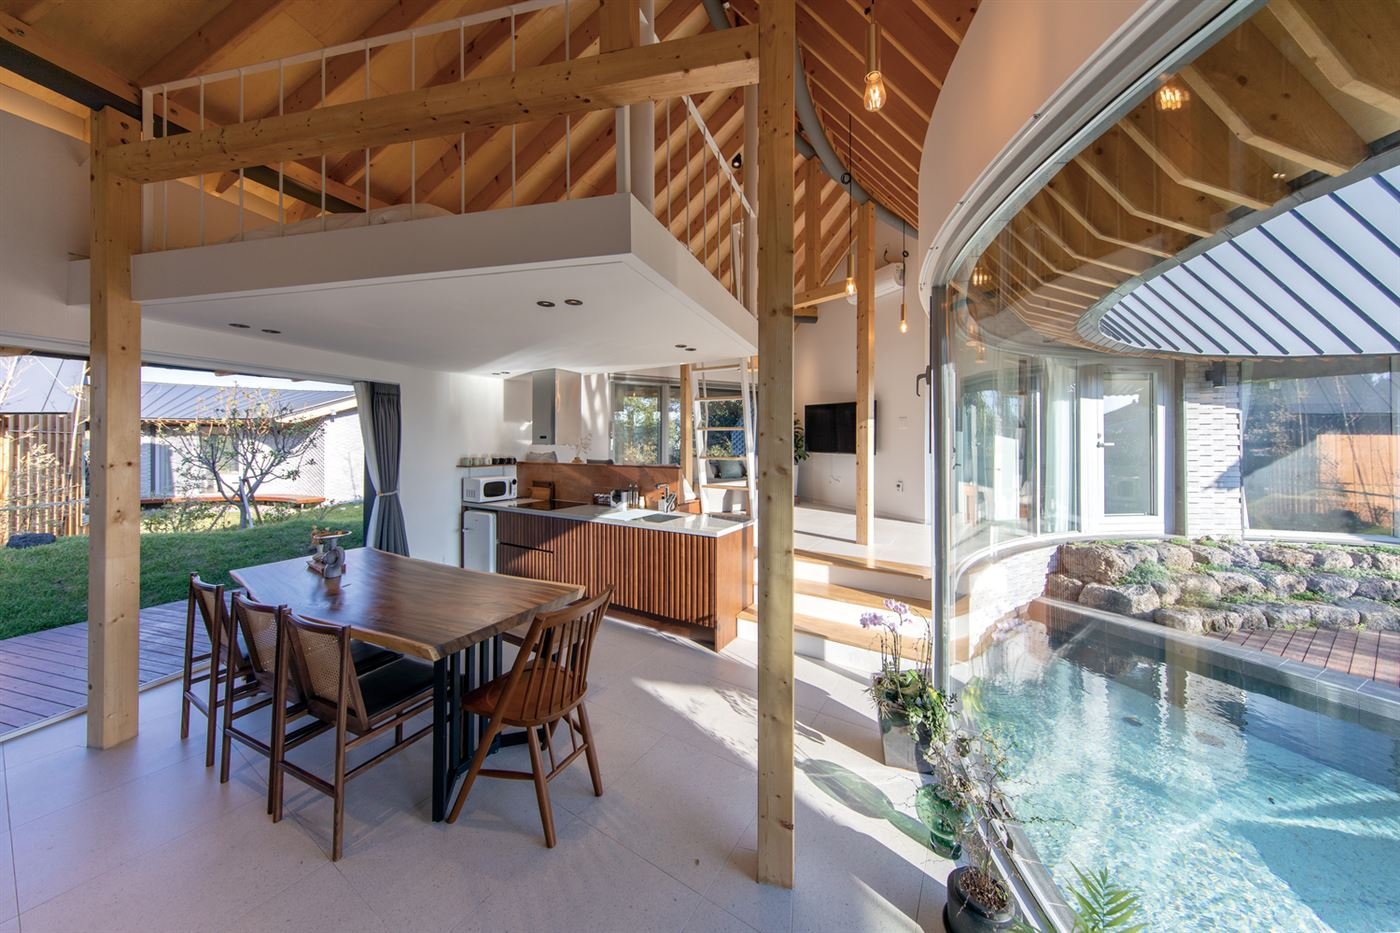 wood beam ceiling and furniture, kitchen with a pool